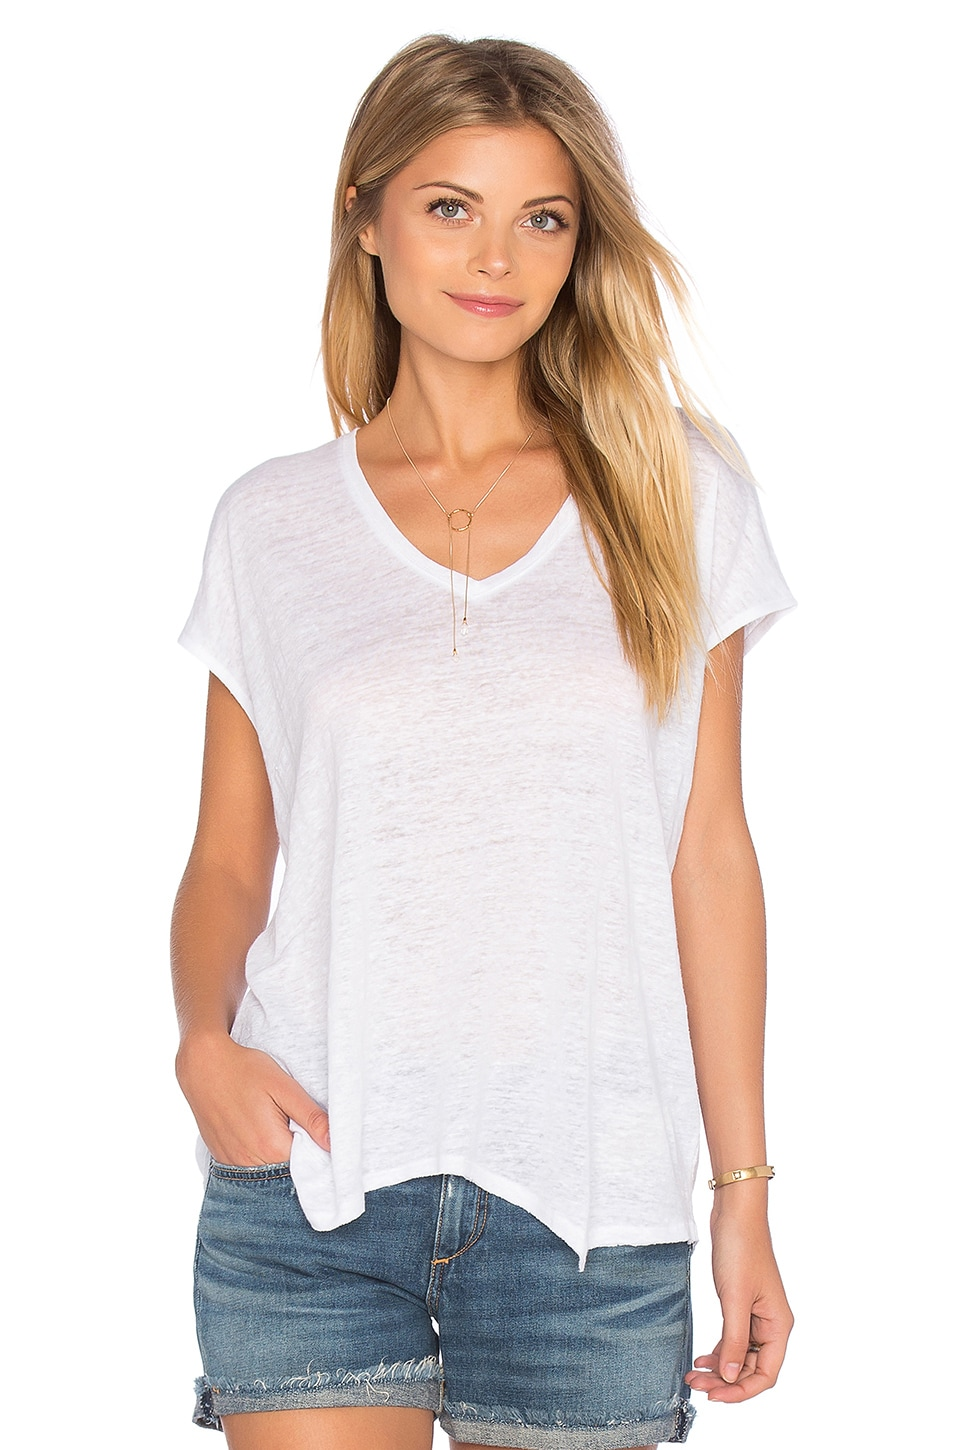 rag & bone/JEAN Malibu V Neck Tee in Bright White